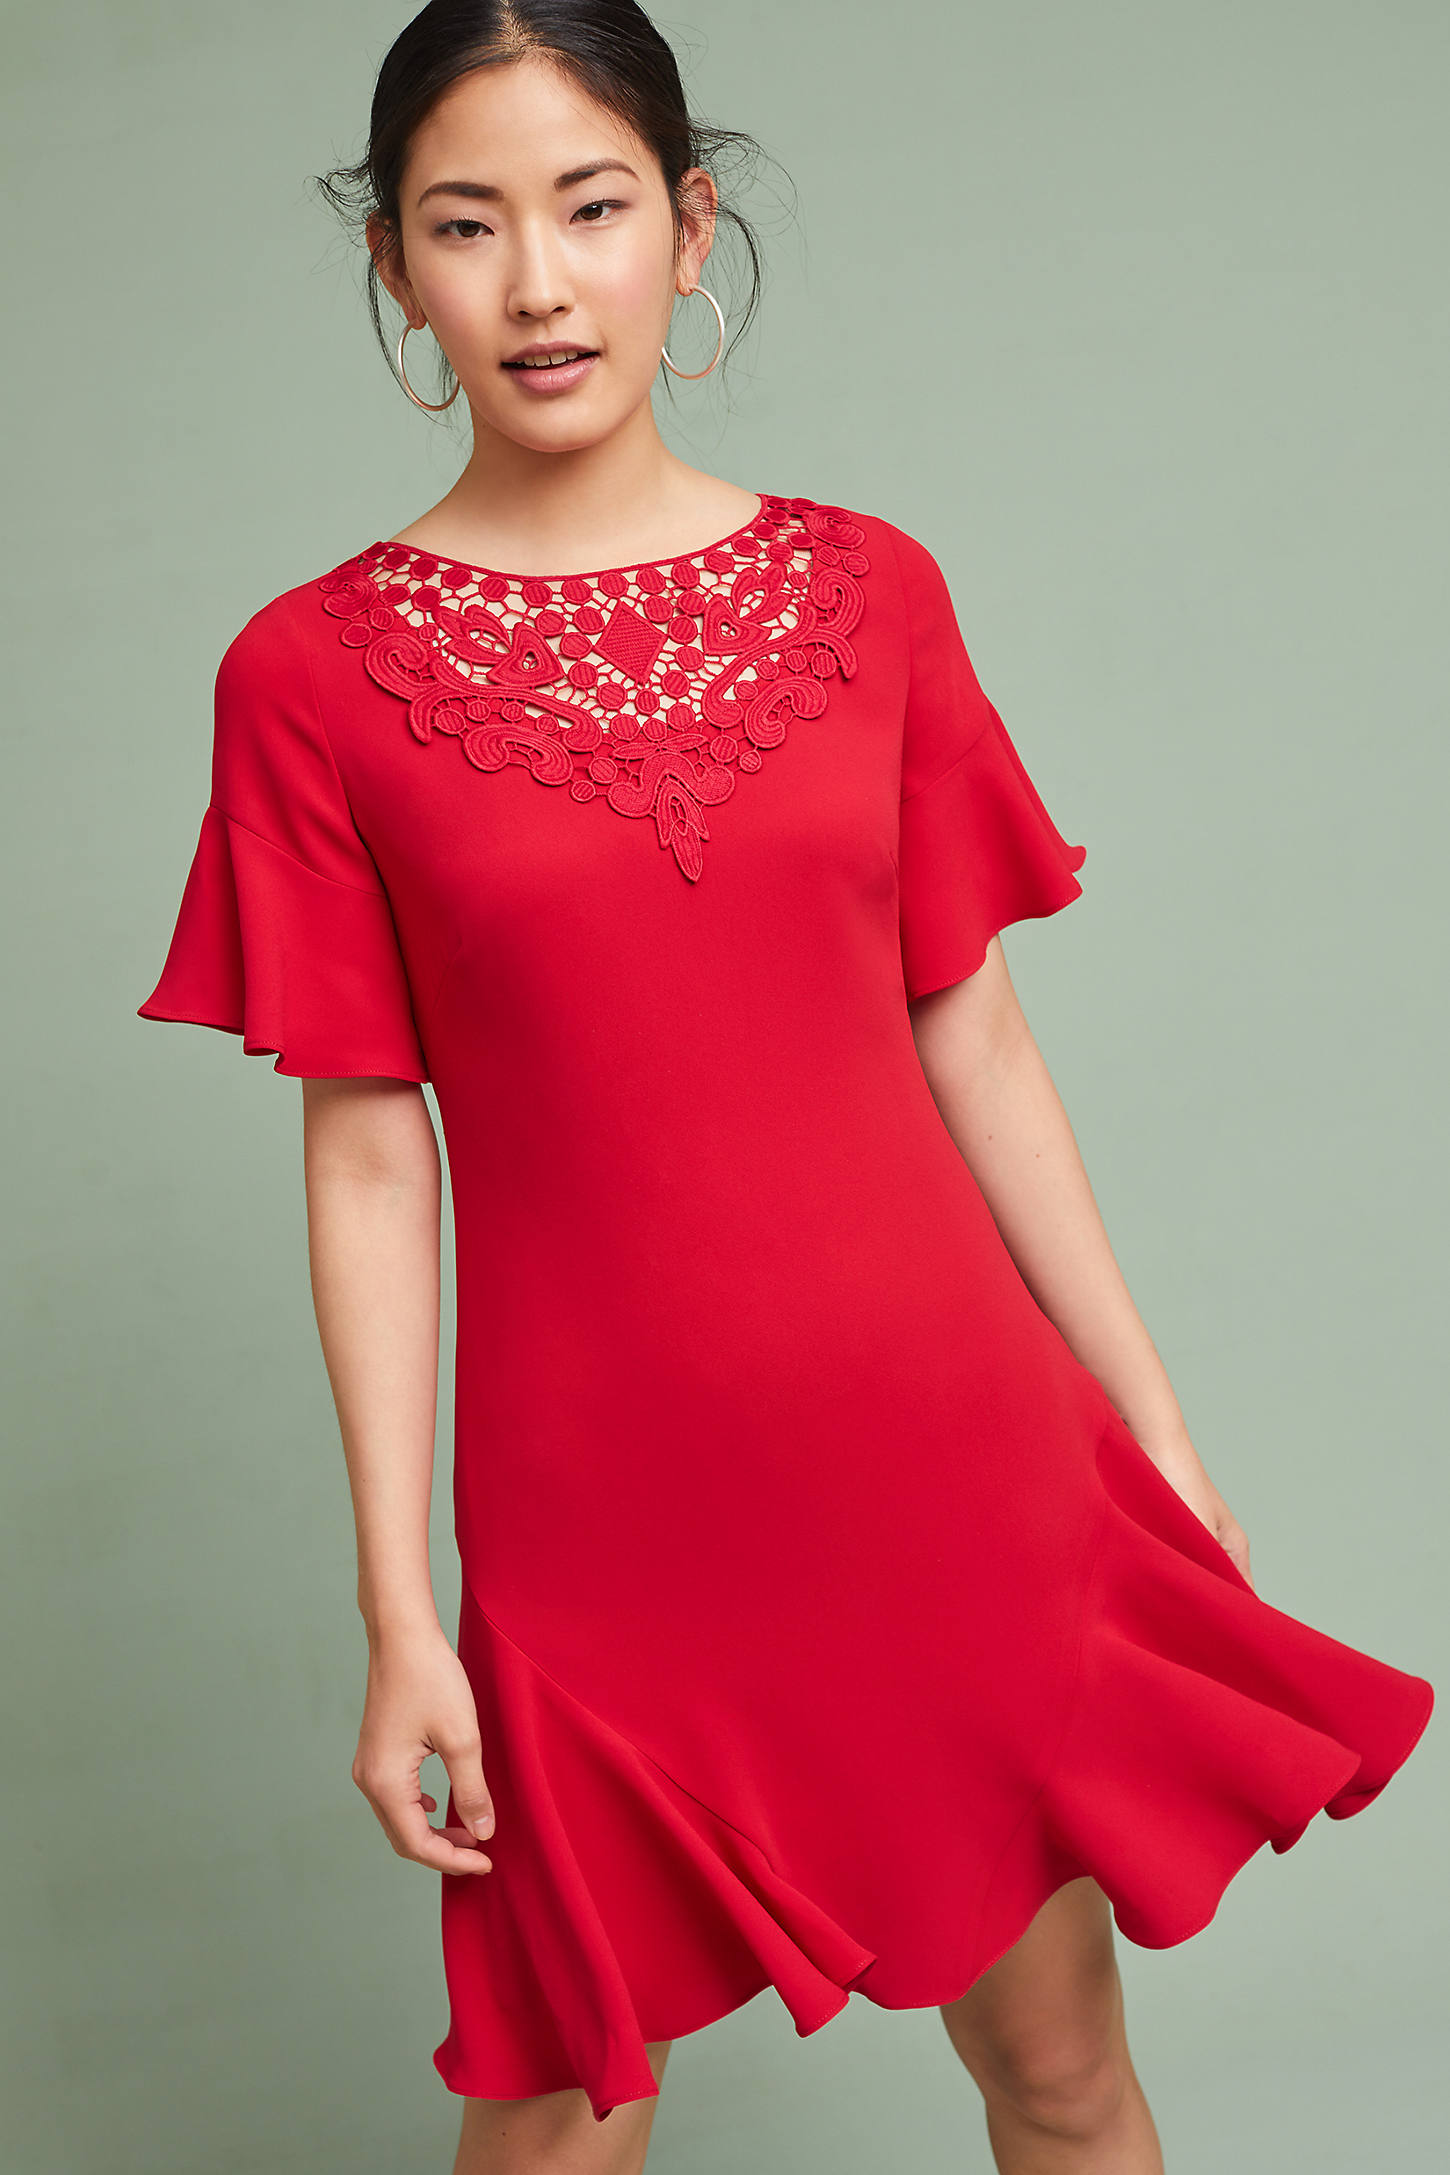 Shoshanna Ruby Ruffled-Sleeve Dress